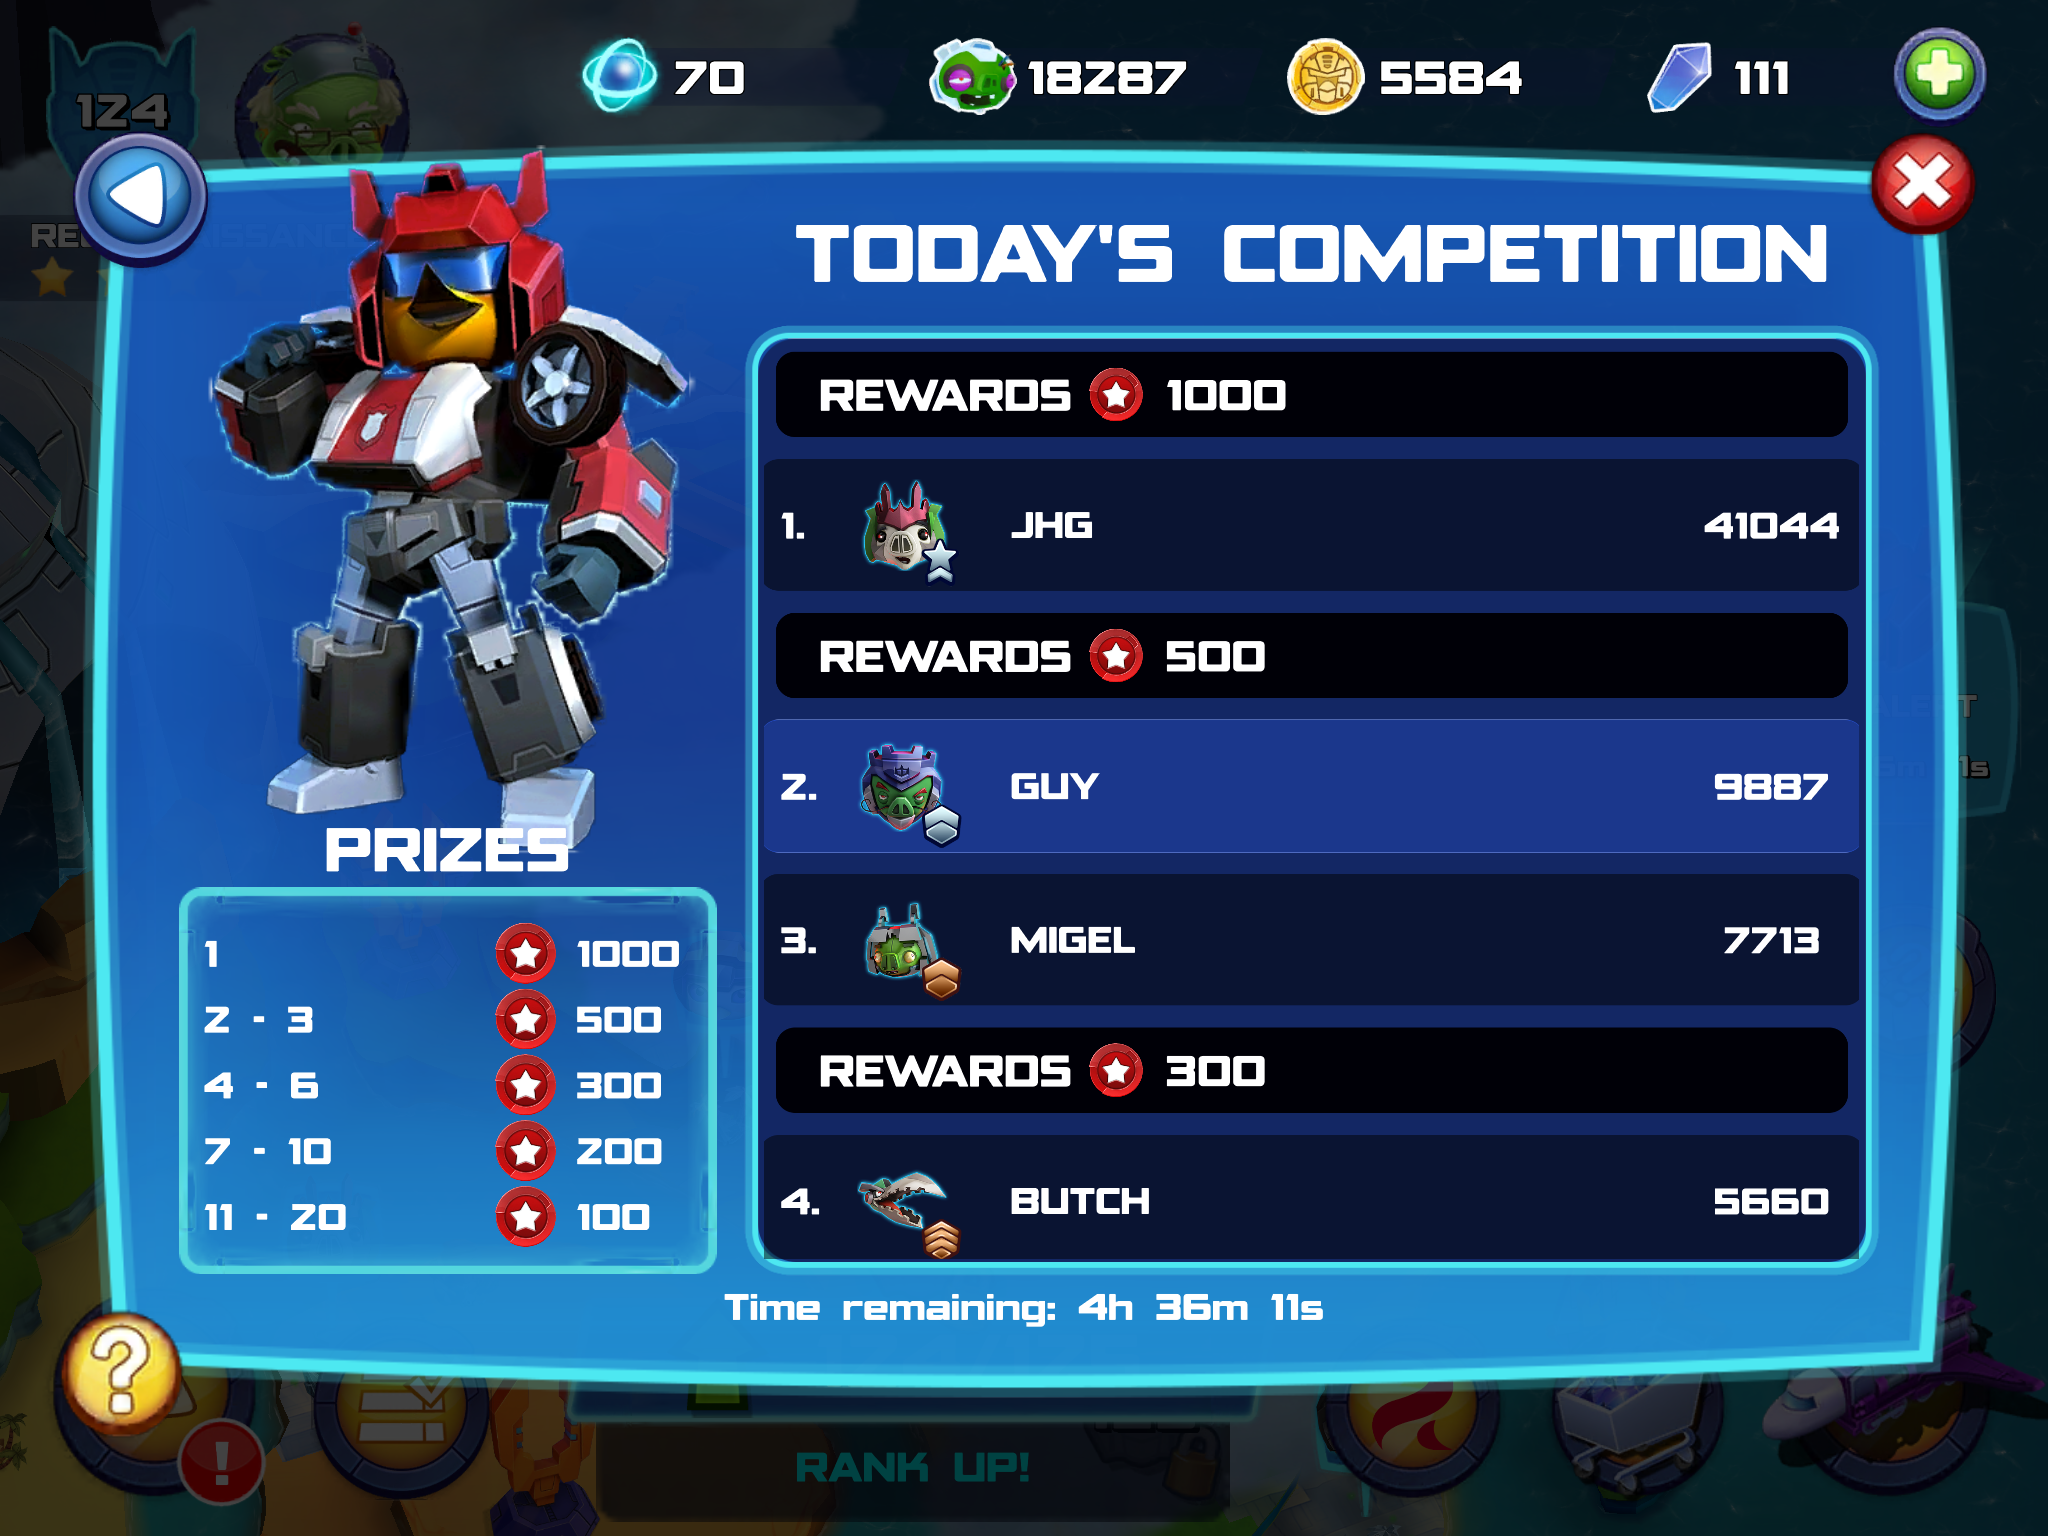 """""""There are no bots on the leaderboards"""" -Rovio"""